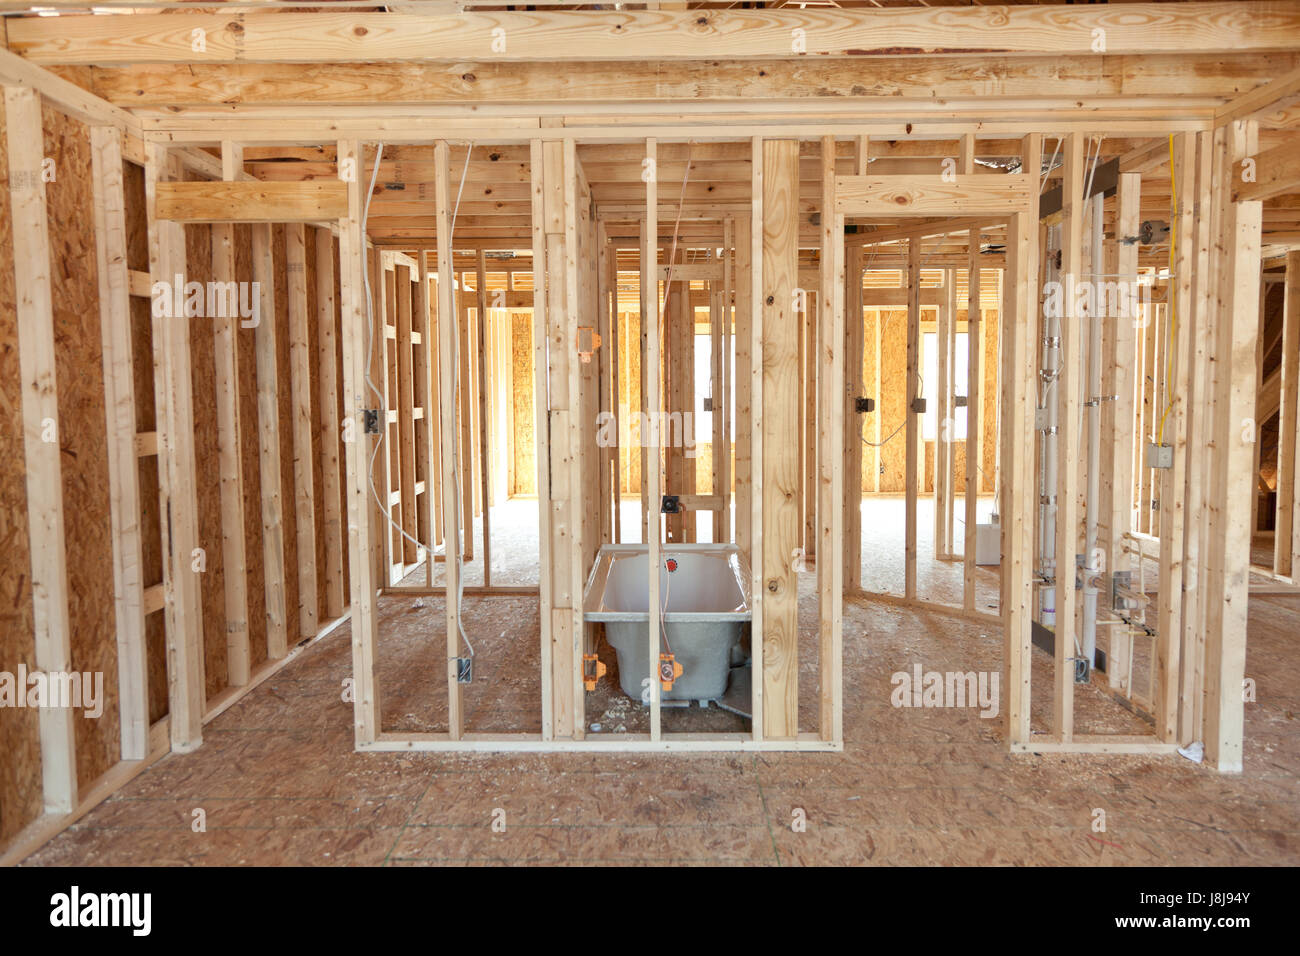 New Home Construction With Plumbing Pipes In The Walls